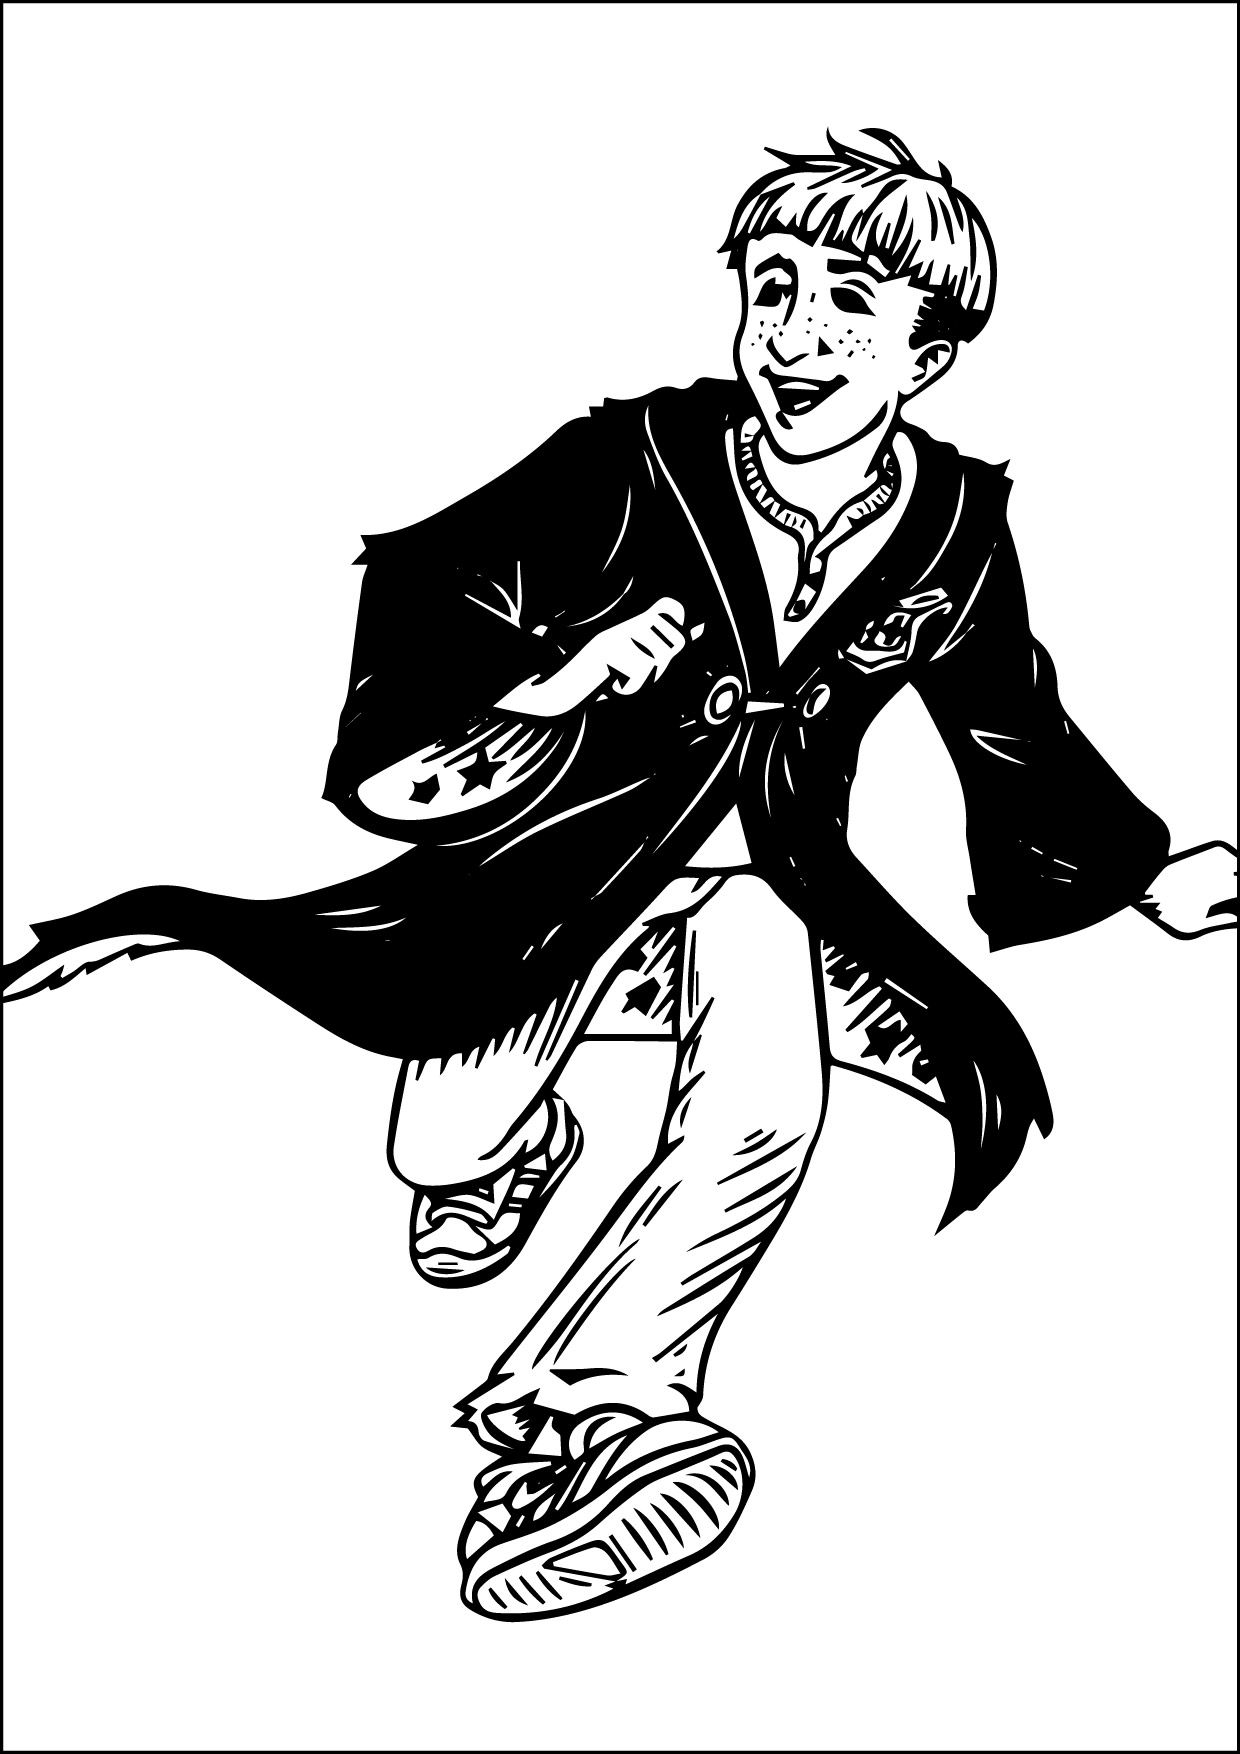 Nice Harry Potter Para Colorear 06 09 2015 234303 Check More At Http Www Mcoloring Com Index Php 2 Harry Potter Coloring Pages Coloring Pictures Harry Potter